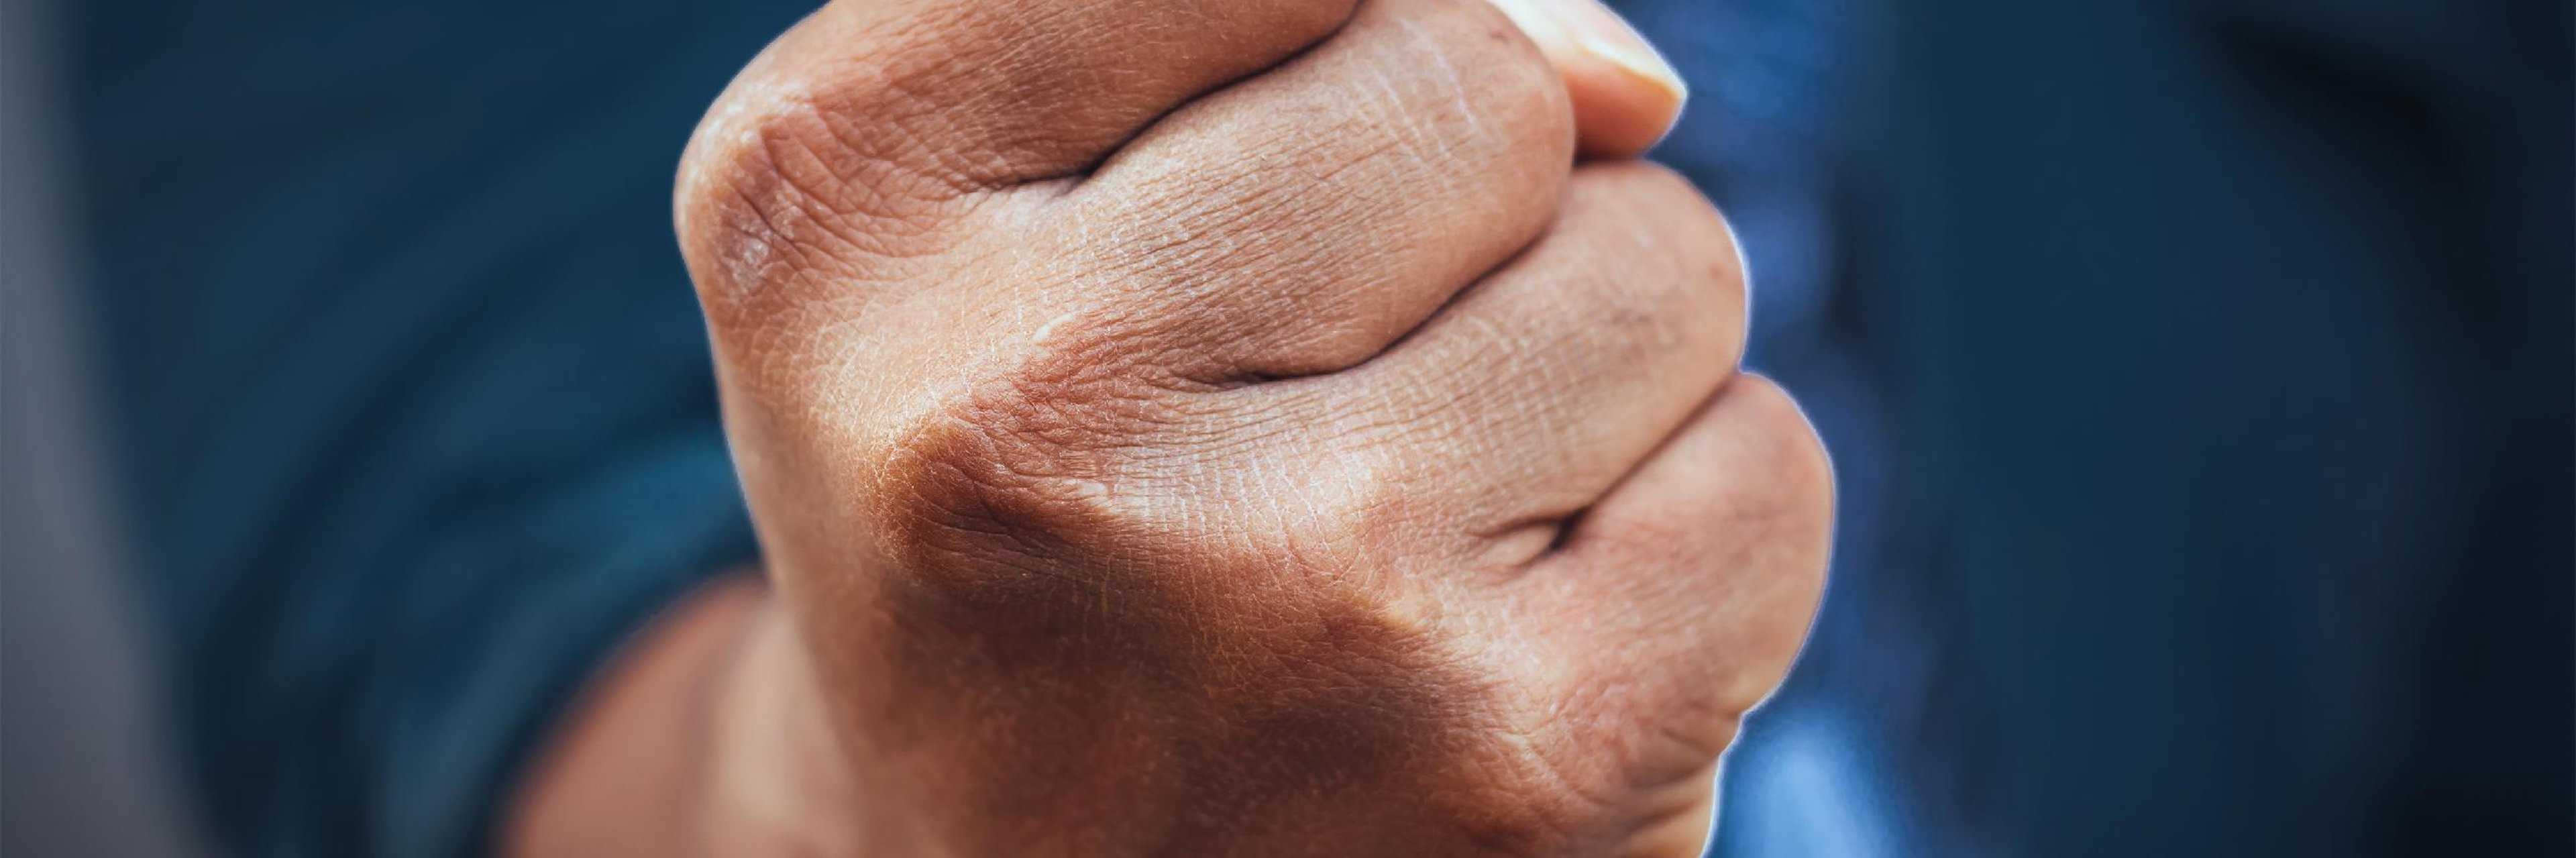 An Open Letter to Muslim Men: The Sunnah Trumps Toxic Masculinity